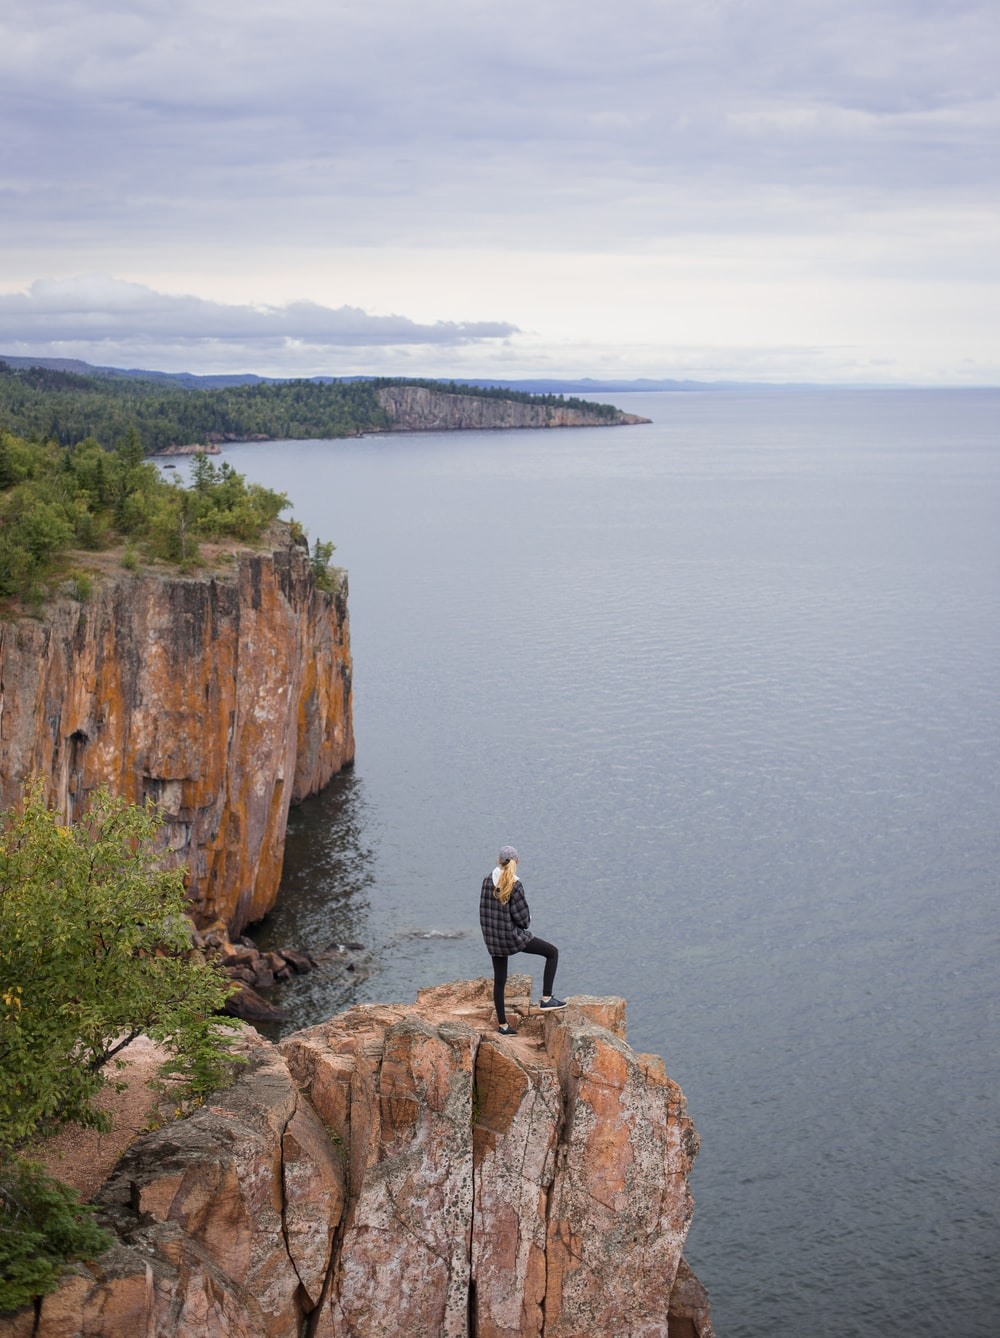 woman standing on cliff near body of water during daytime